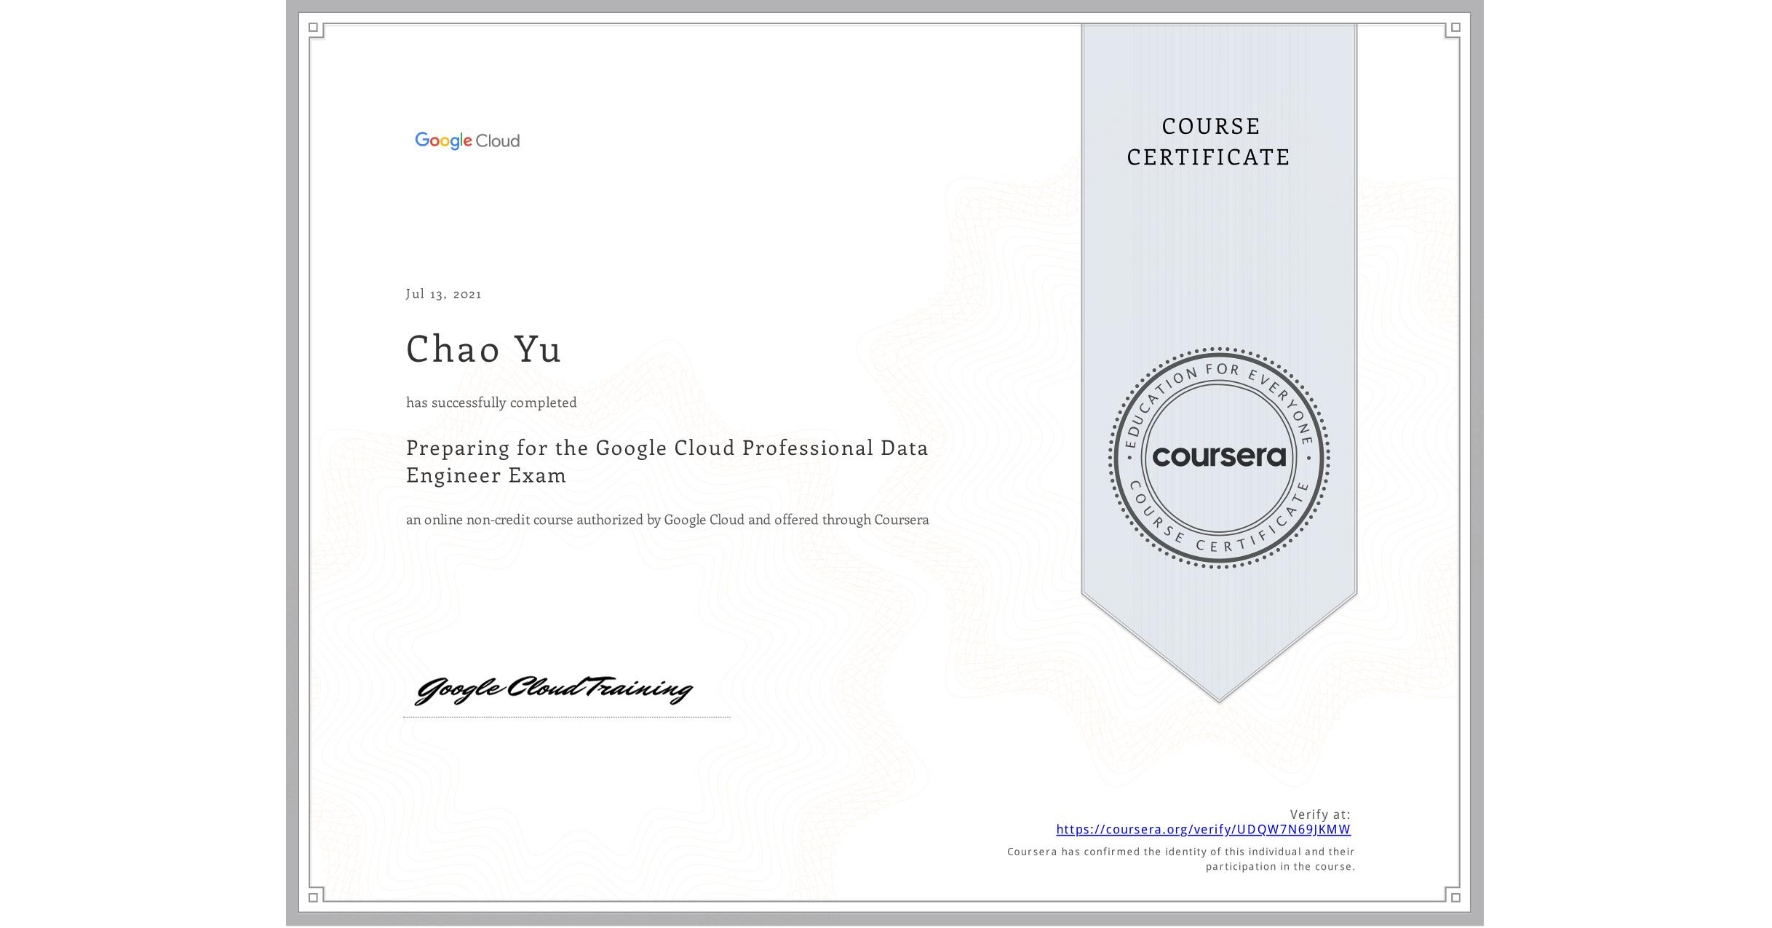 View certificate for Chao Yu, Preparing for the Google Cloud Professional Data Engineer Exam, an online non-credit course authorized by Google Cloud and offered through Coursera